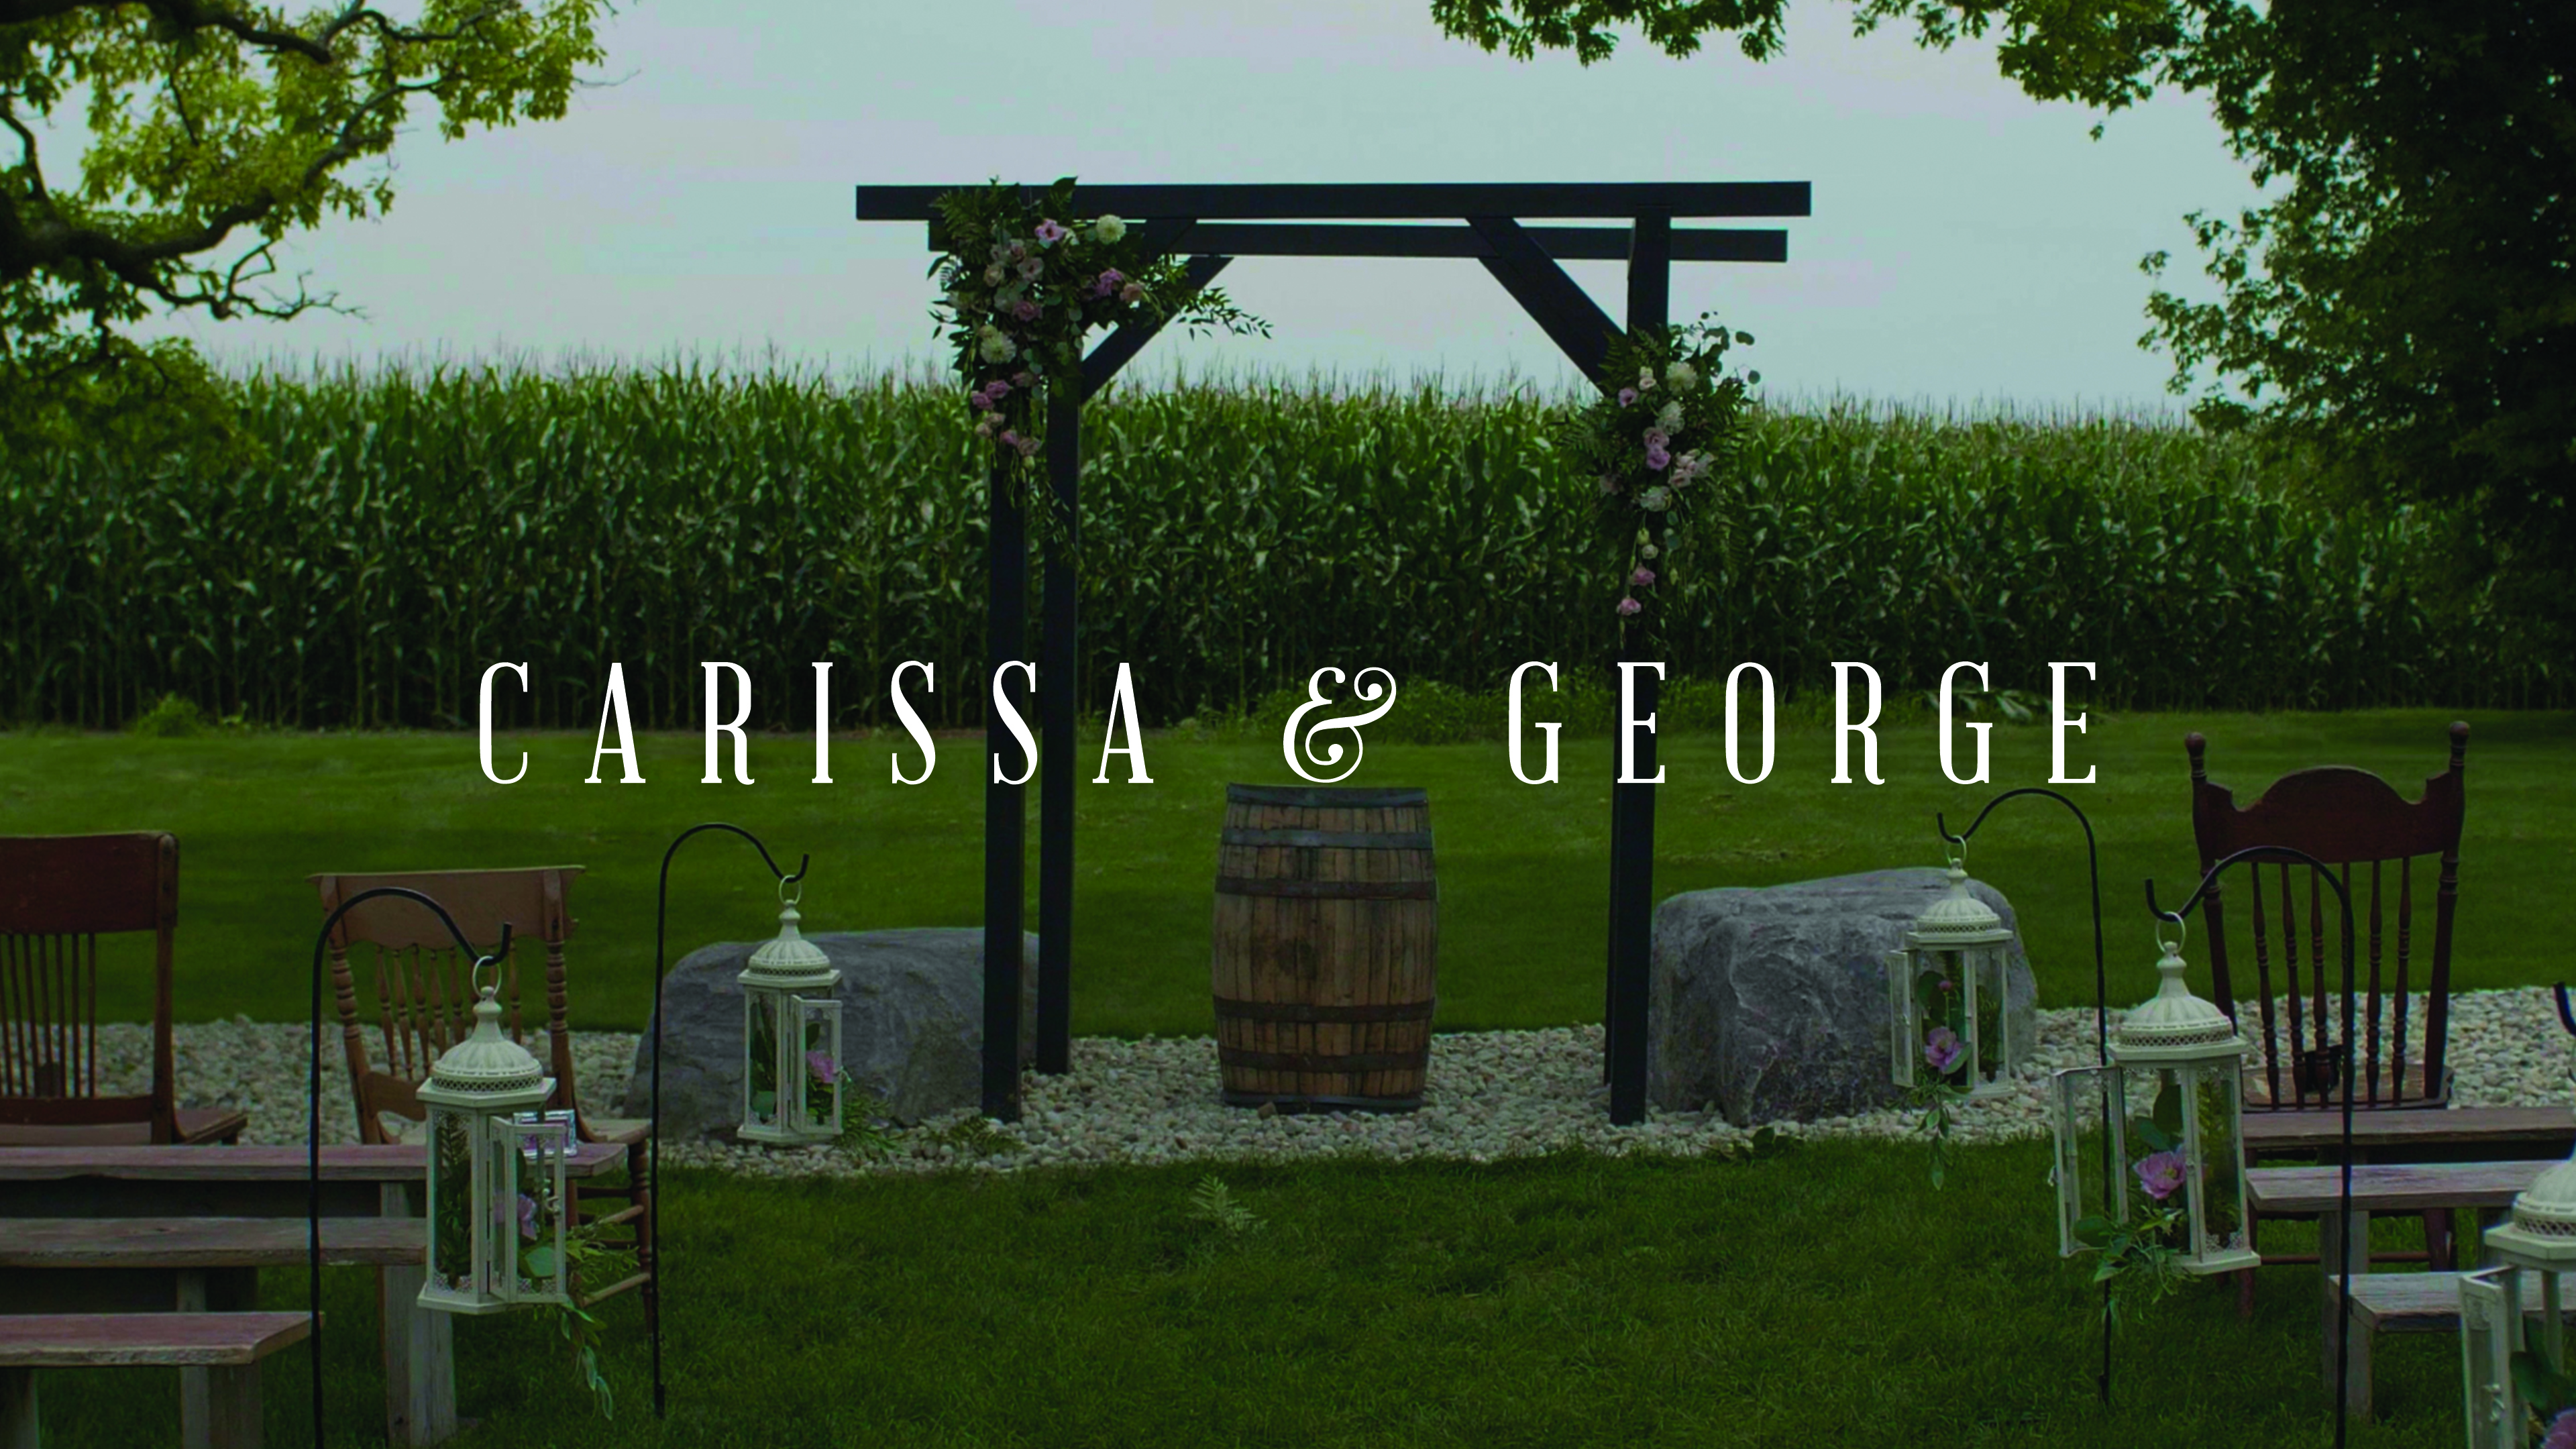 Carissa + George | Oconomowoc, Wisconsin | The Barn at Trinity Peak, Oconomowoc